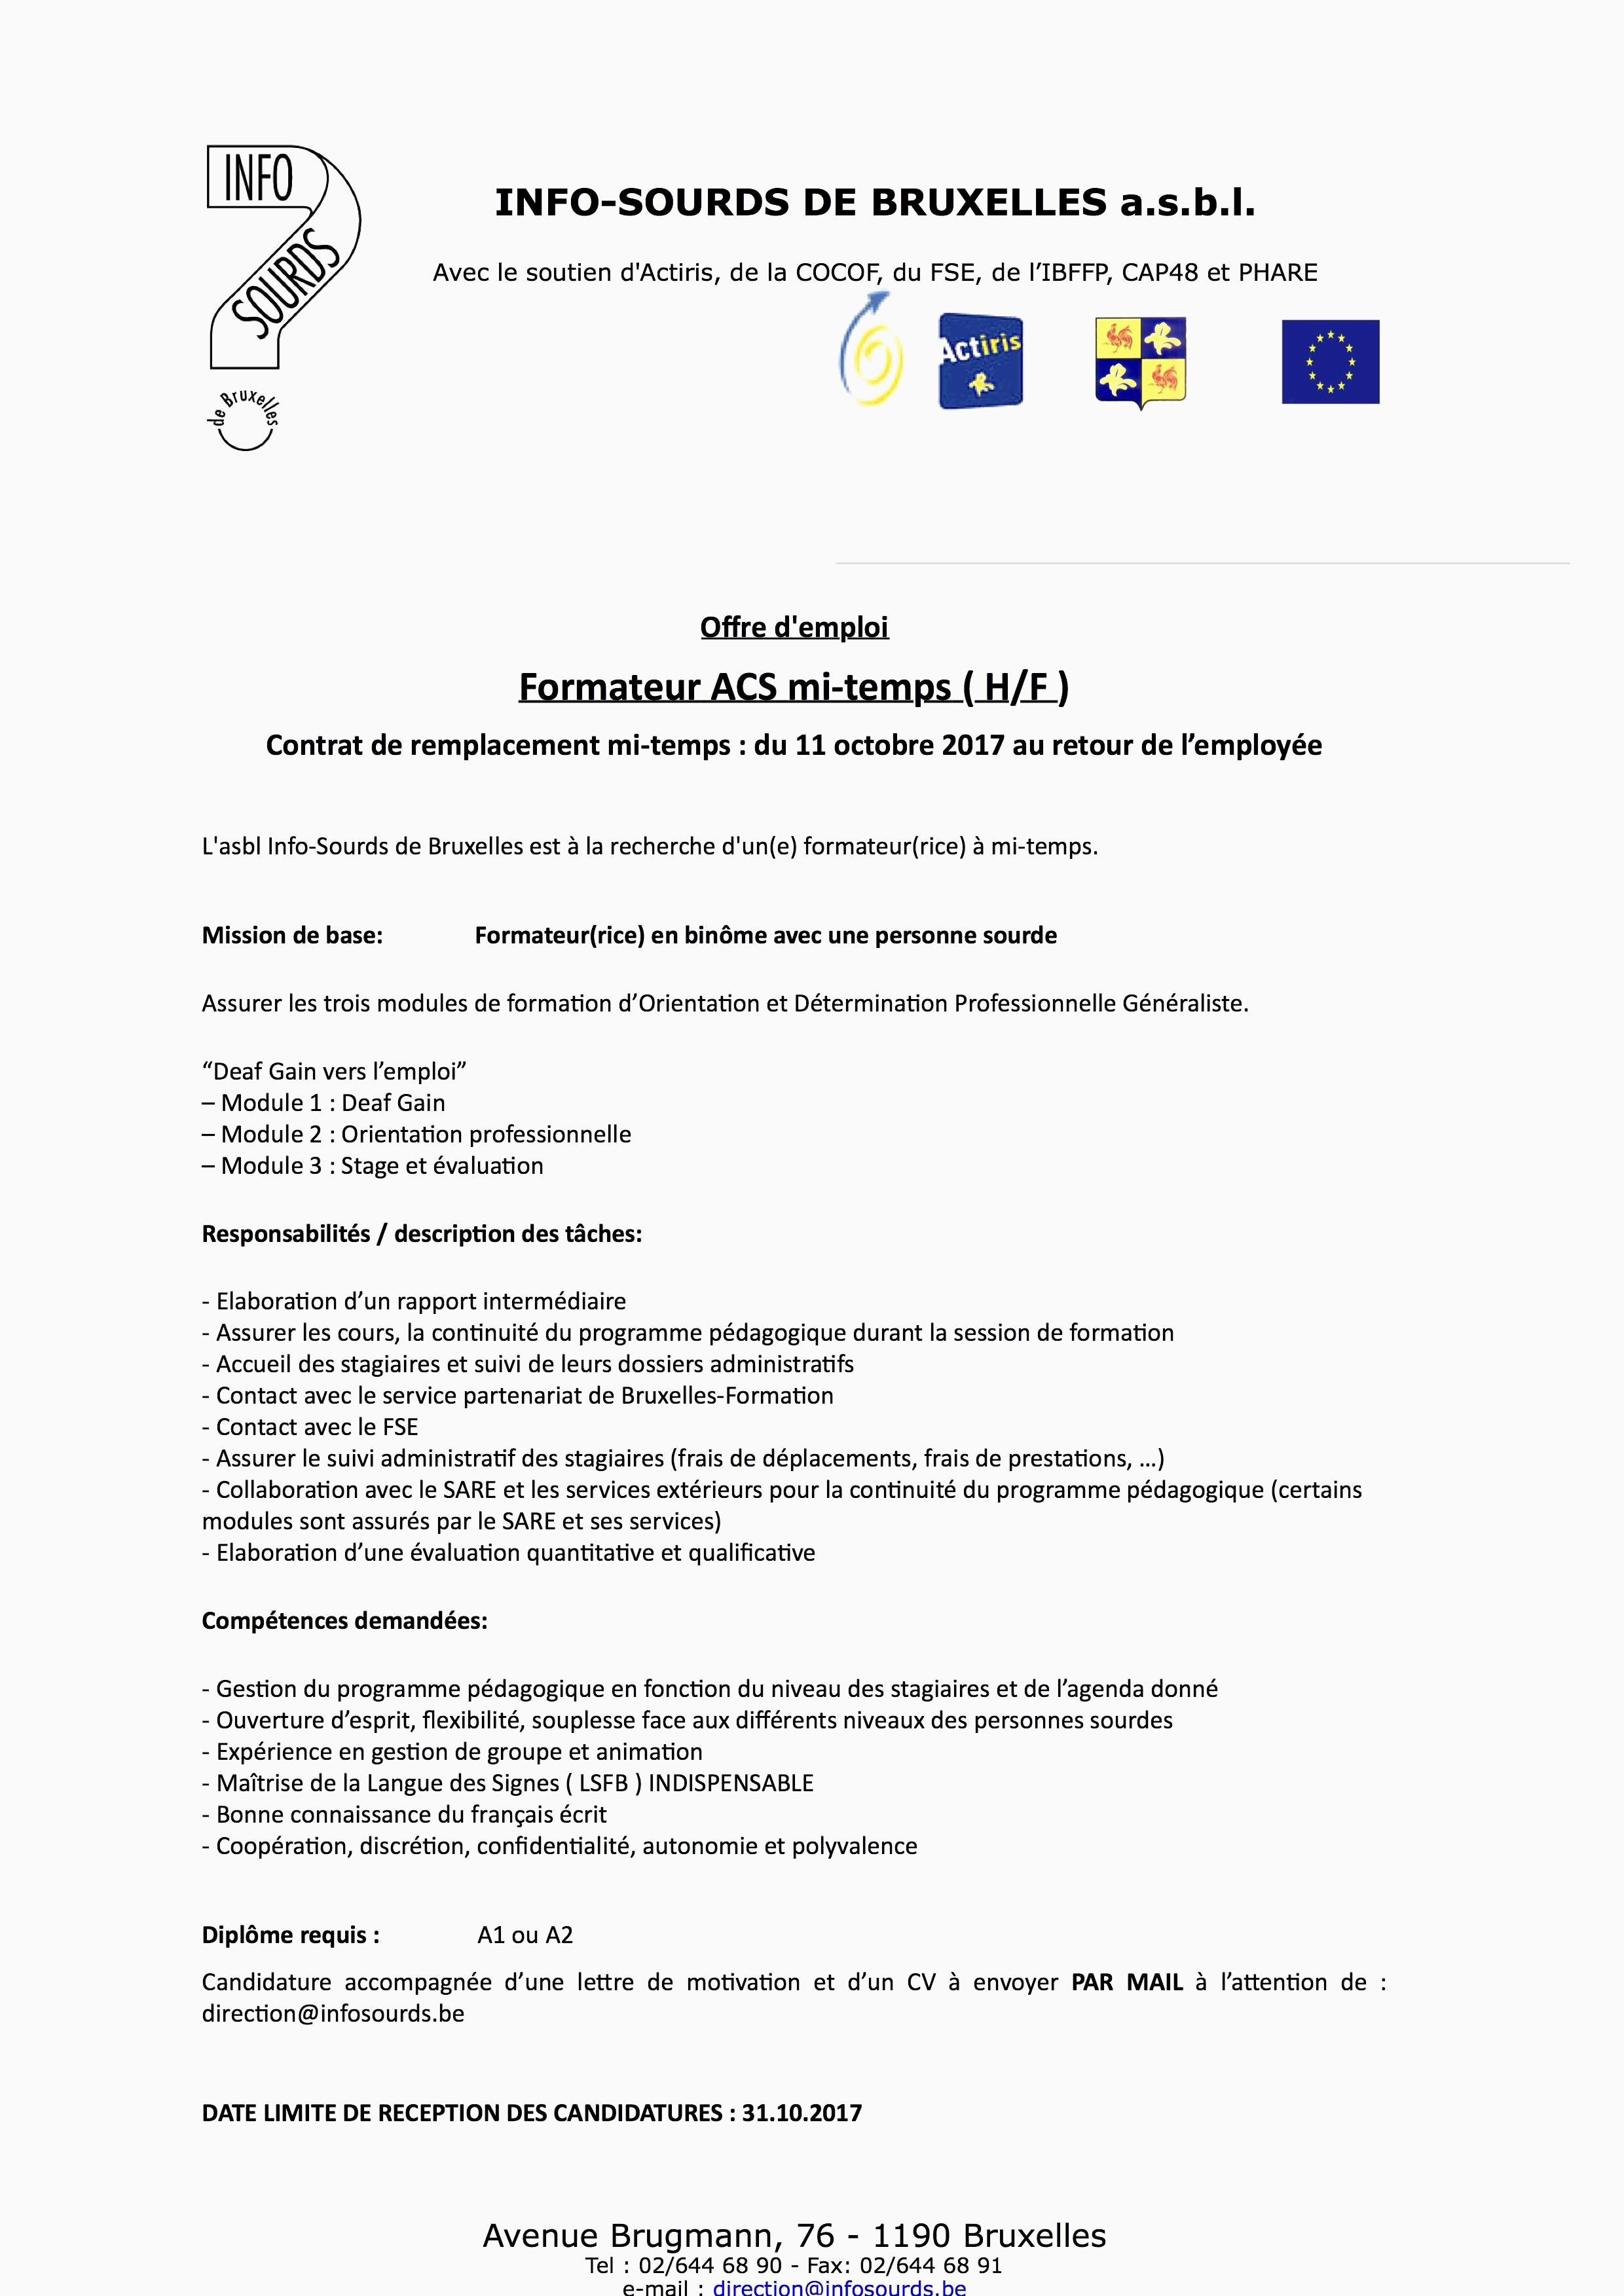 Stage Immersion En Entreprise Pole Emploi Lettre De Motivation Stage Immersion En Entreprise Pole Emploi